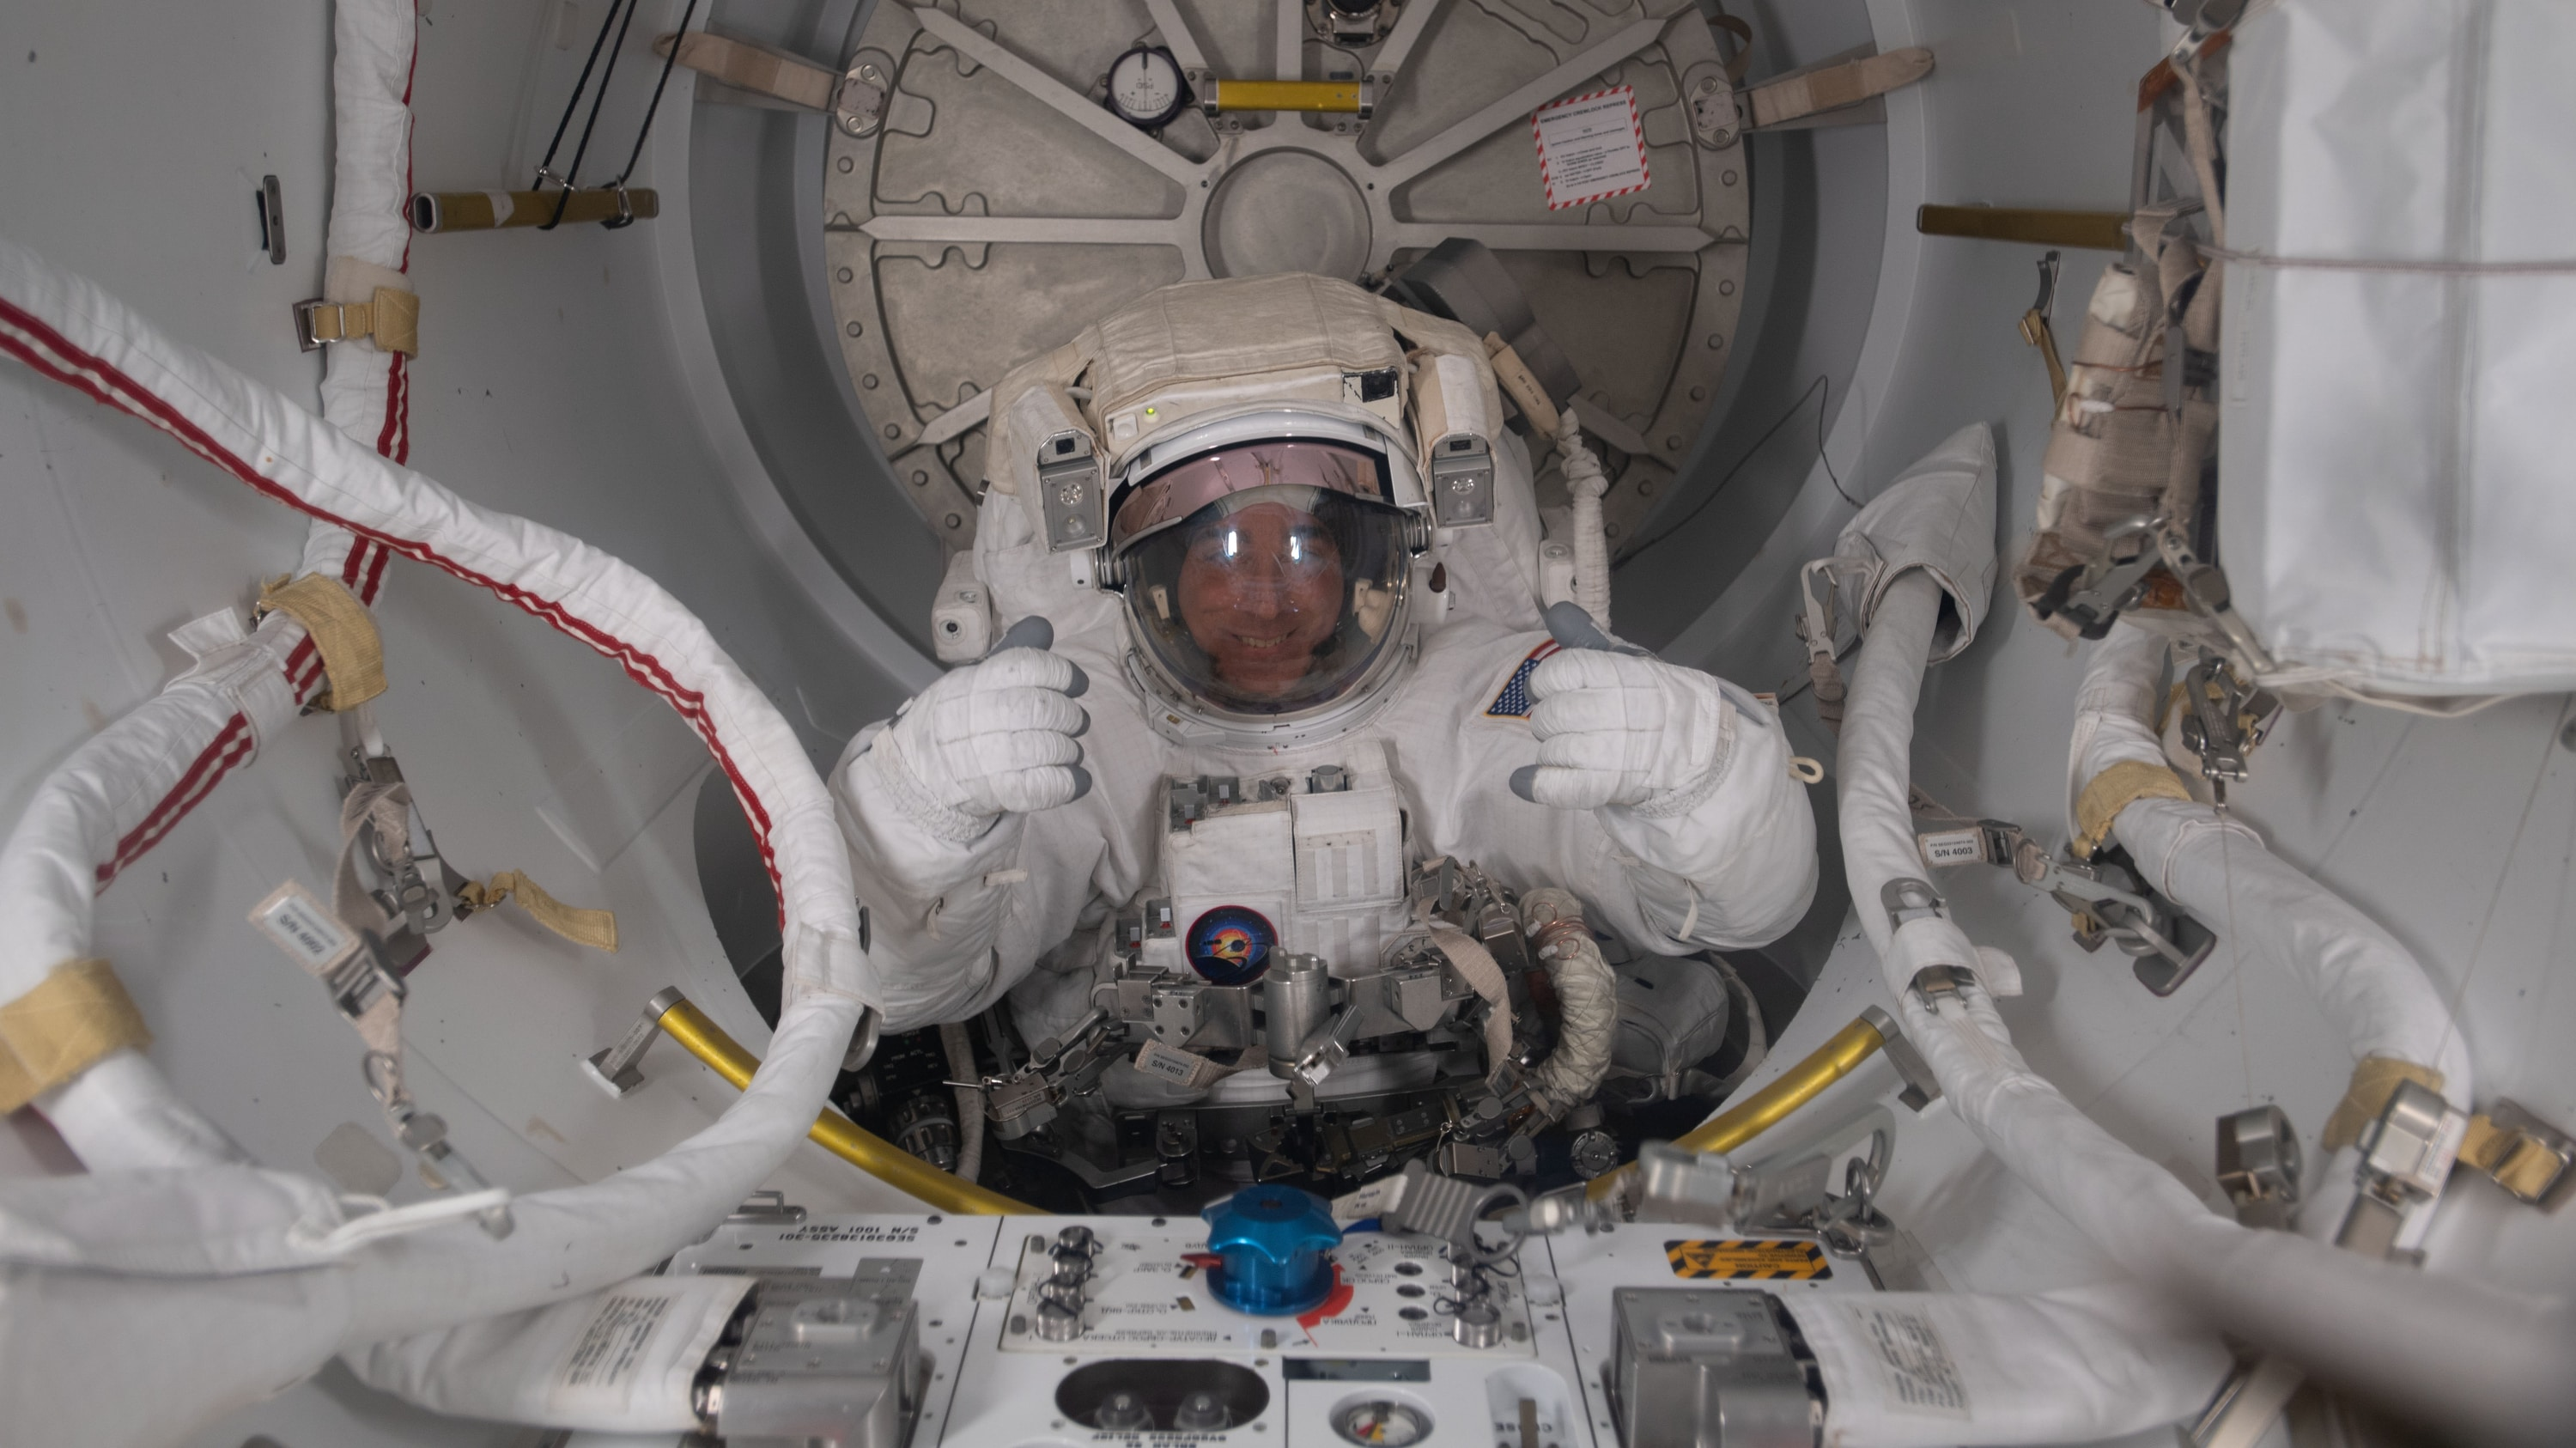 AMONG THE STARS - (July 1, 2020) - NASA astronaut and Expedition 63 Commander is pictured in his U.S. spacesuit halfway inside the crew lock portion of the Quest airlock during a spacewalk to replace batteries on the International Space Station's Starboard-6 truss structure. (NASA) CHRIS CASSIDY